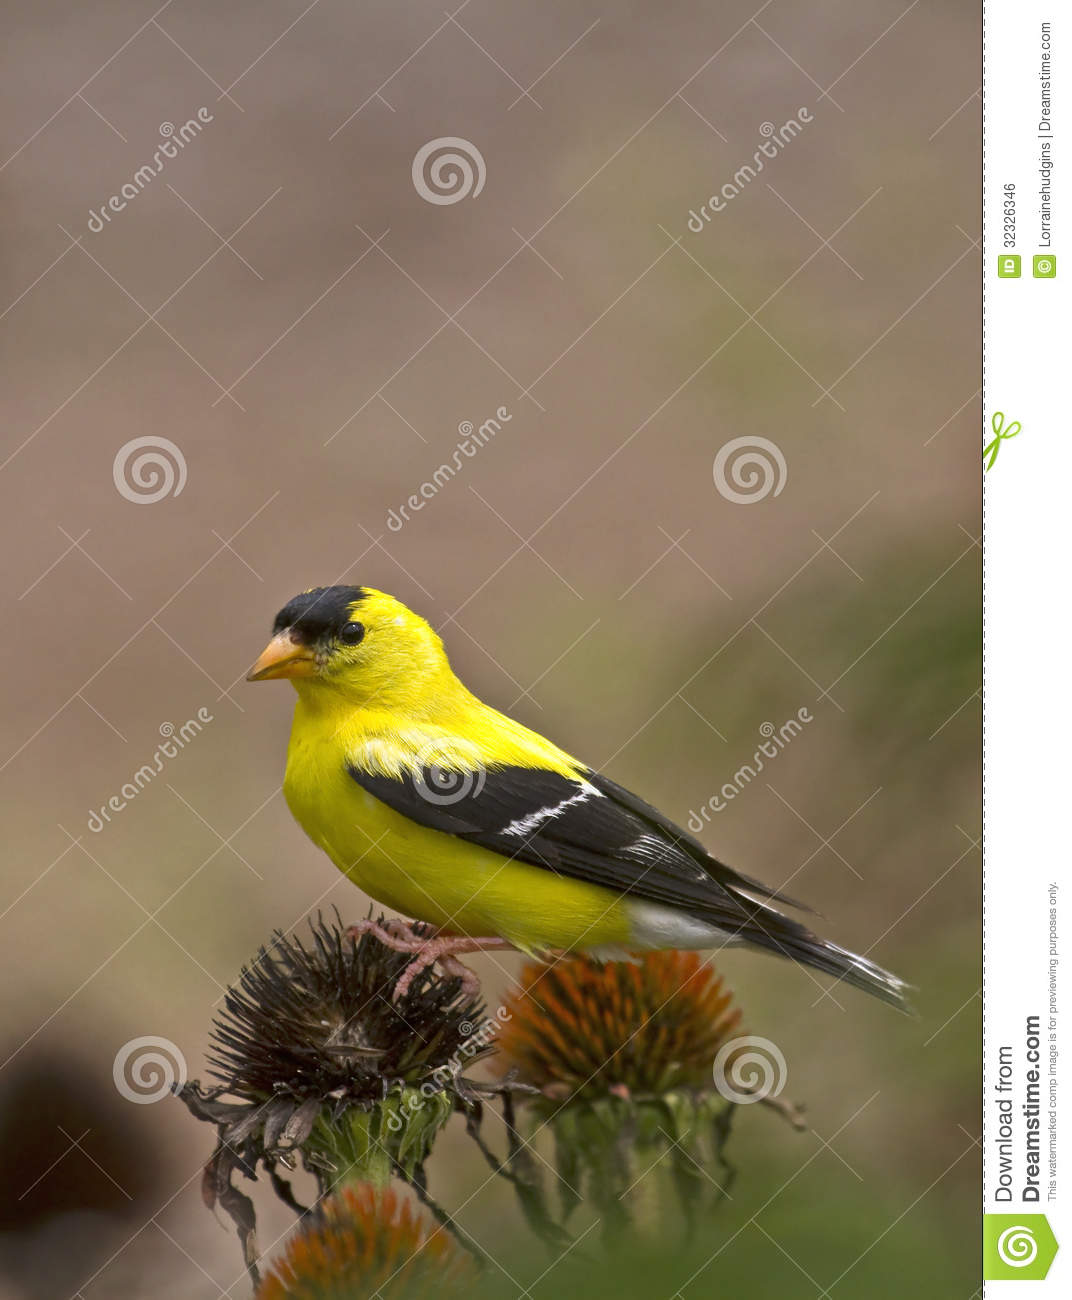 Goldfinch Perched On Coneflower, Vertical Stock Photo - Image of ...